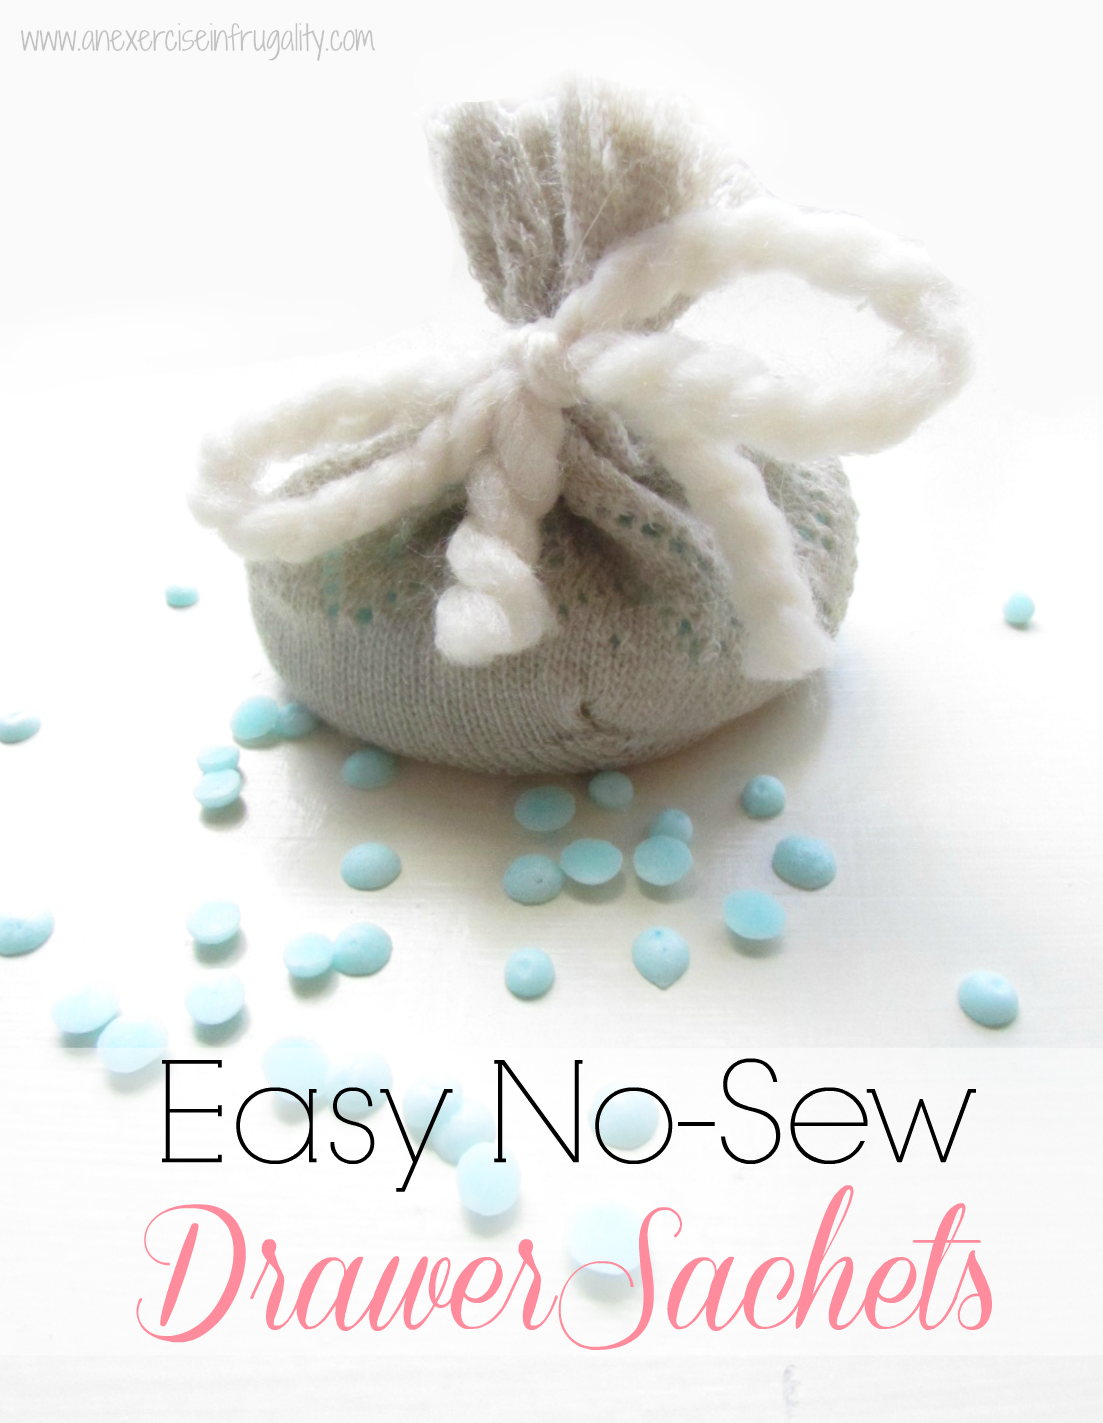 Easy No Sew Scented Sachets Scented Sachets Drawer Sachets Sachet